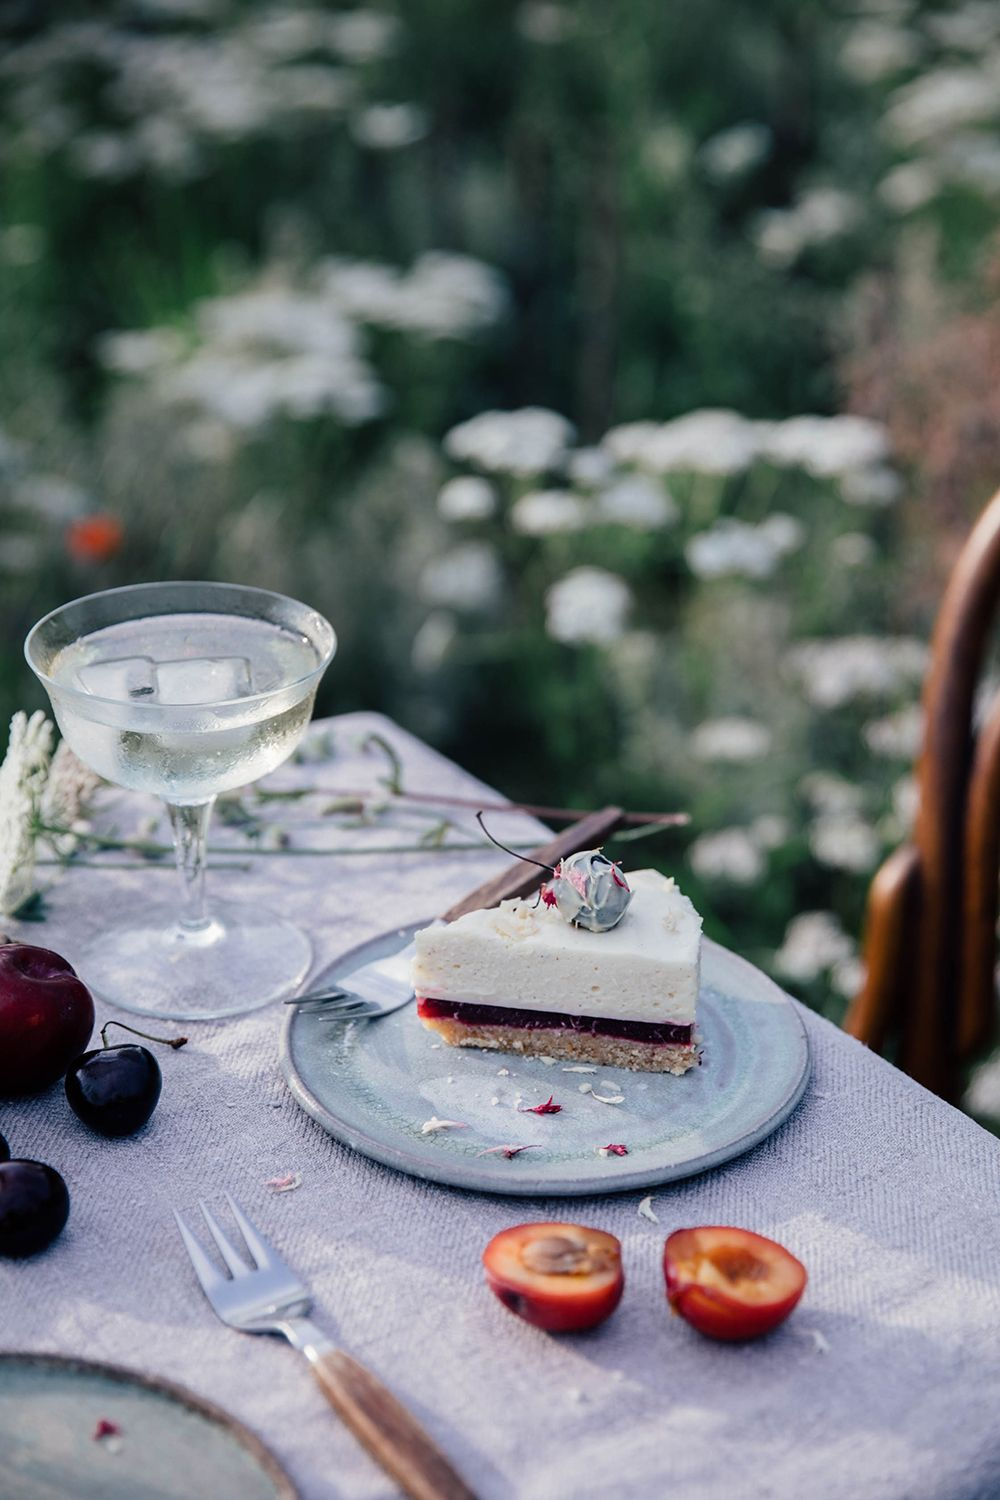 Gluten-free white chocolate cake with cherry-plum jelly